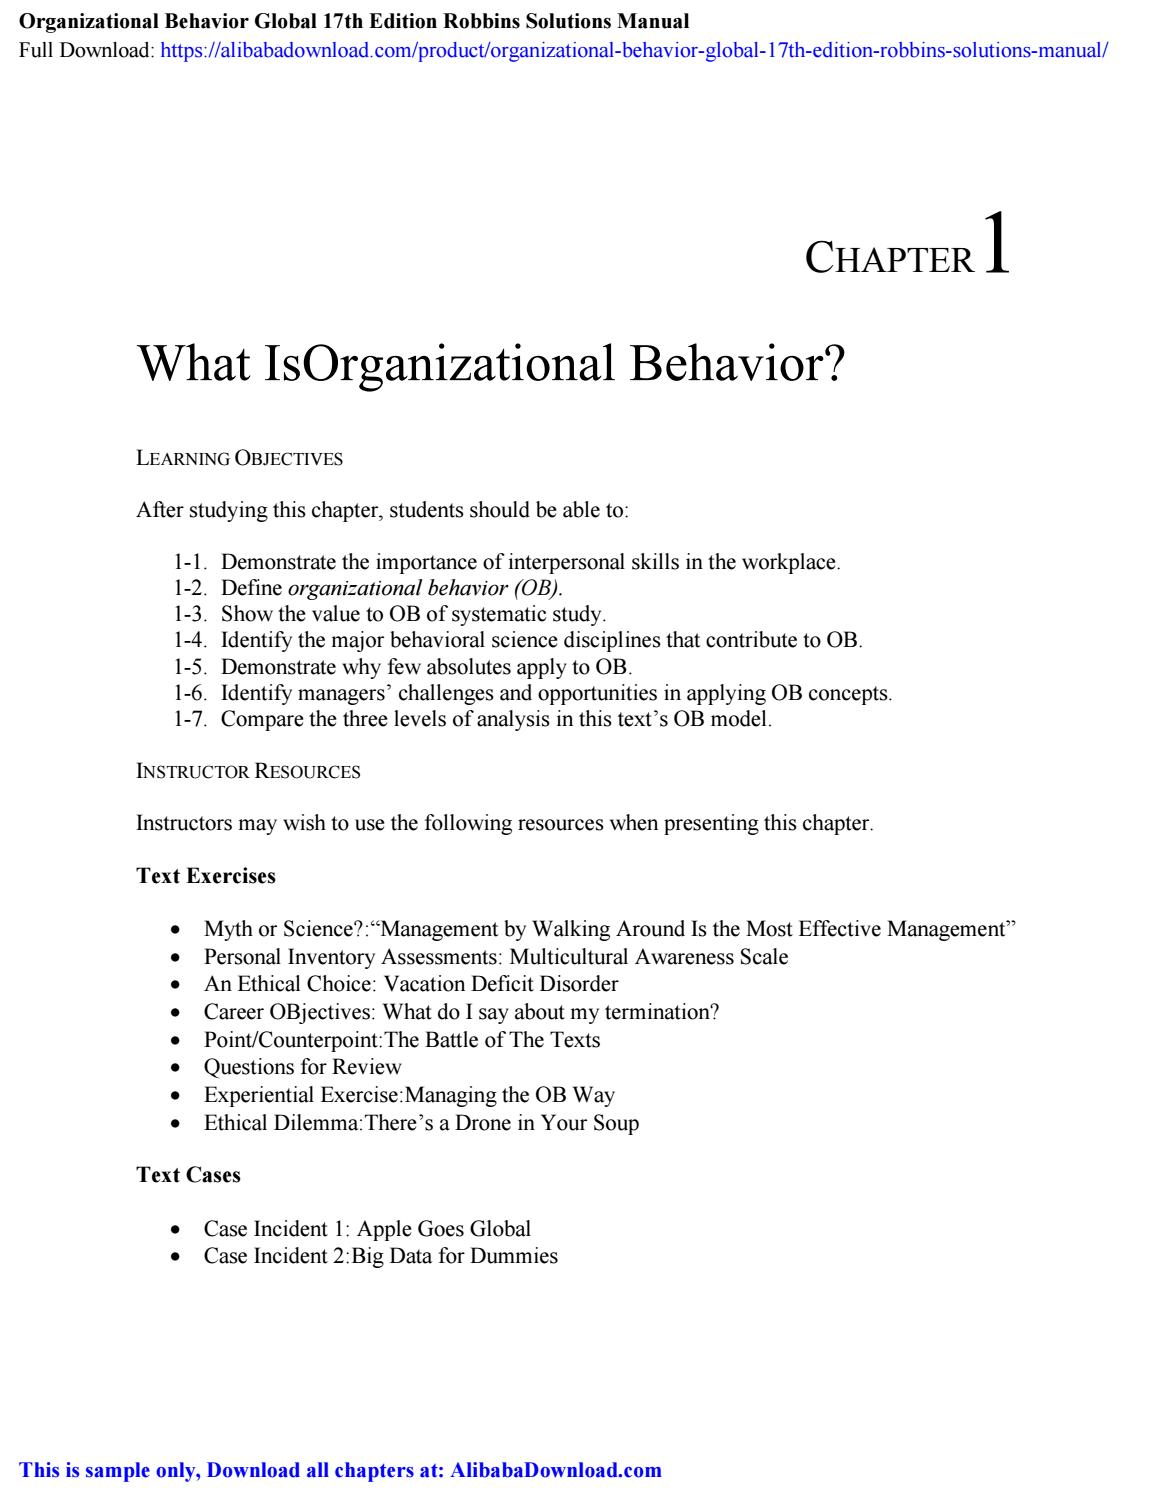 Organizational Behavior Robbins 17th Edition Pdf